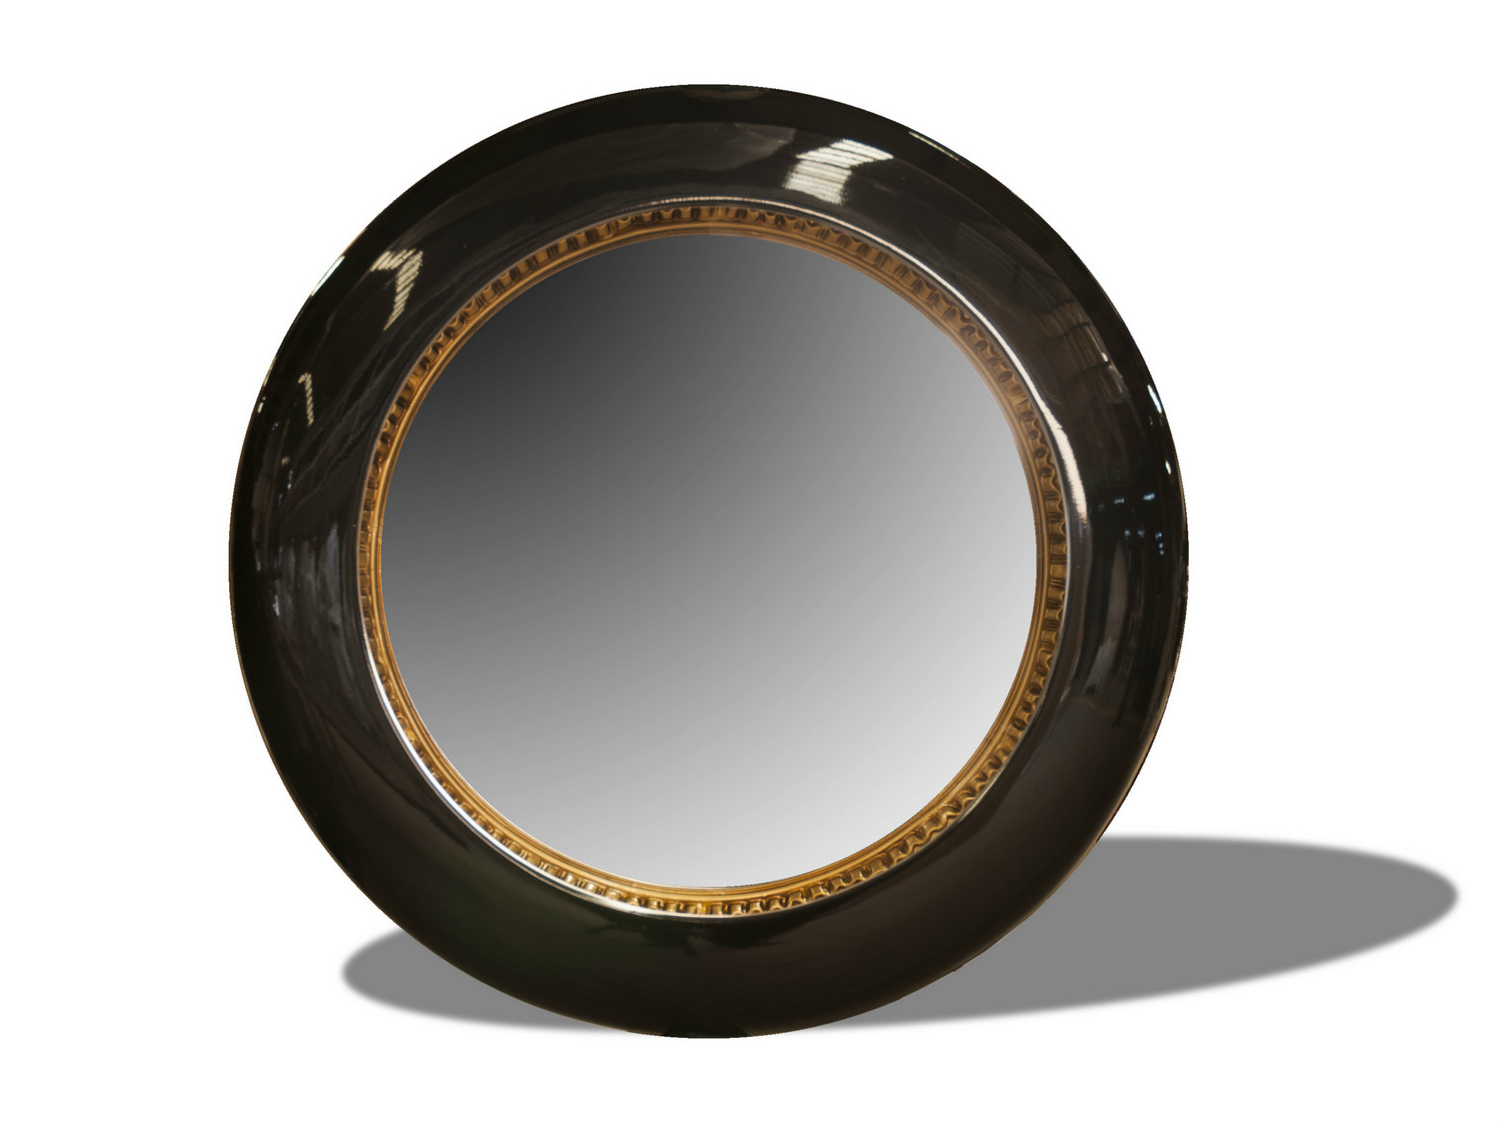 Round wall mounted framed mirror polart collection by polart Round framed mirror